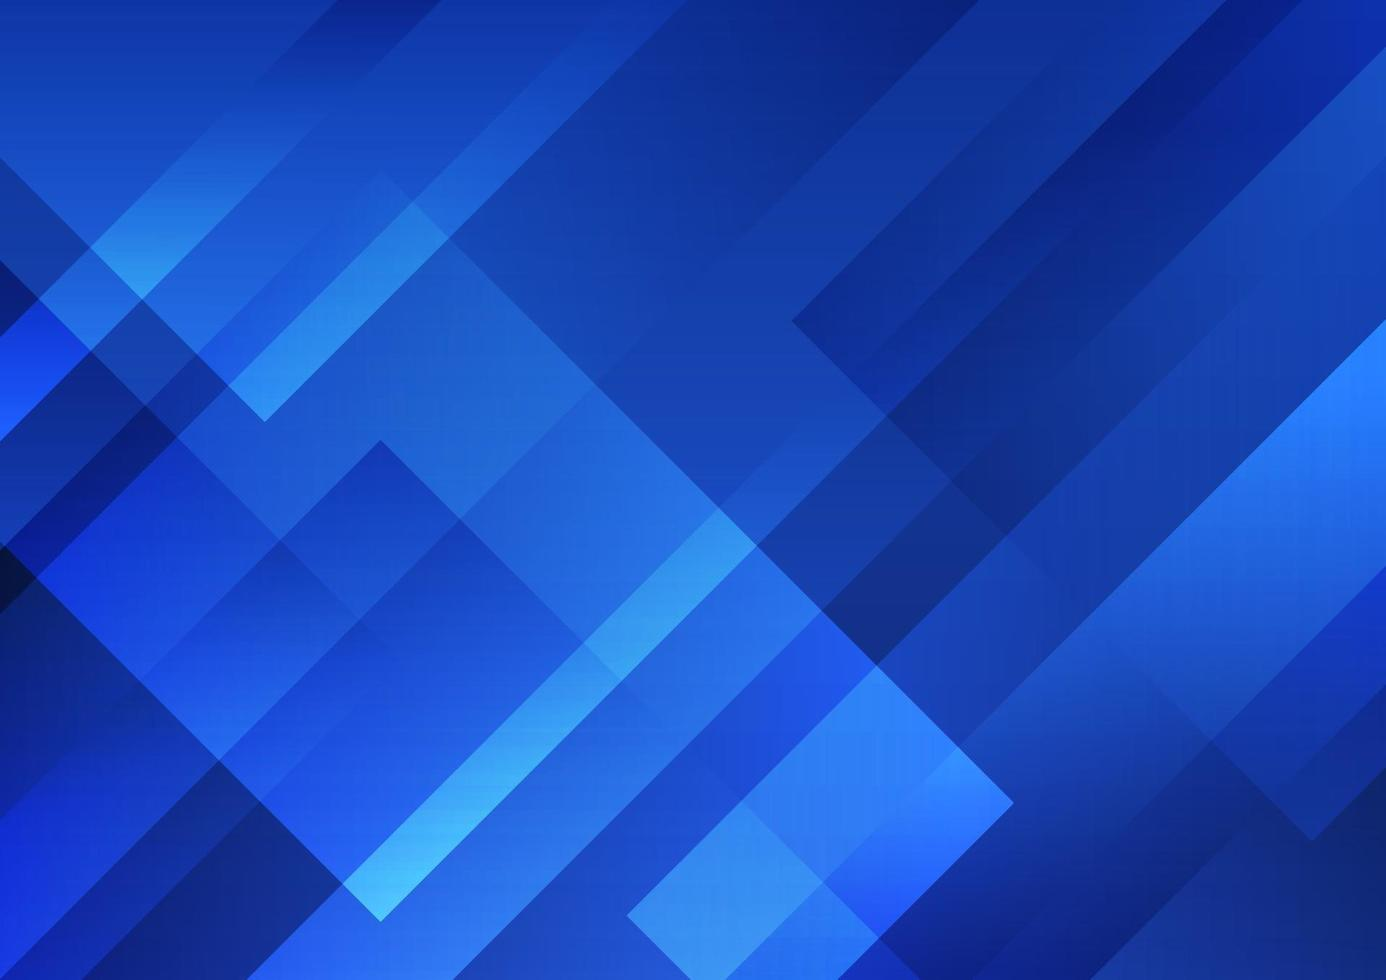 Abstract blue geometric shape overlay layer background technology 1386x980